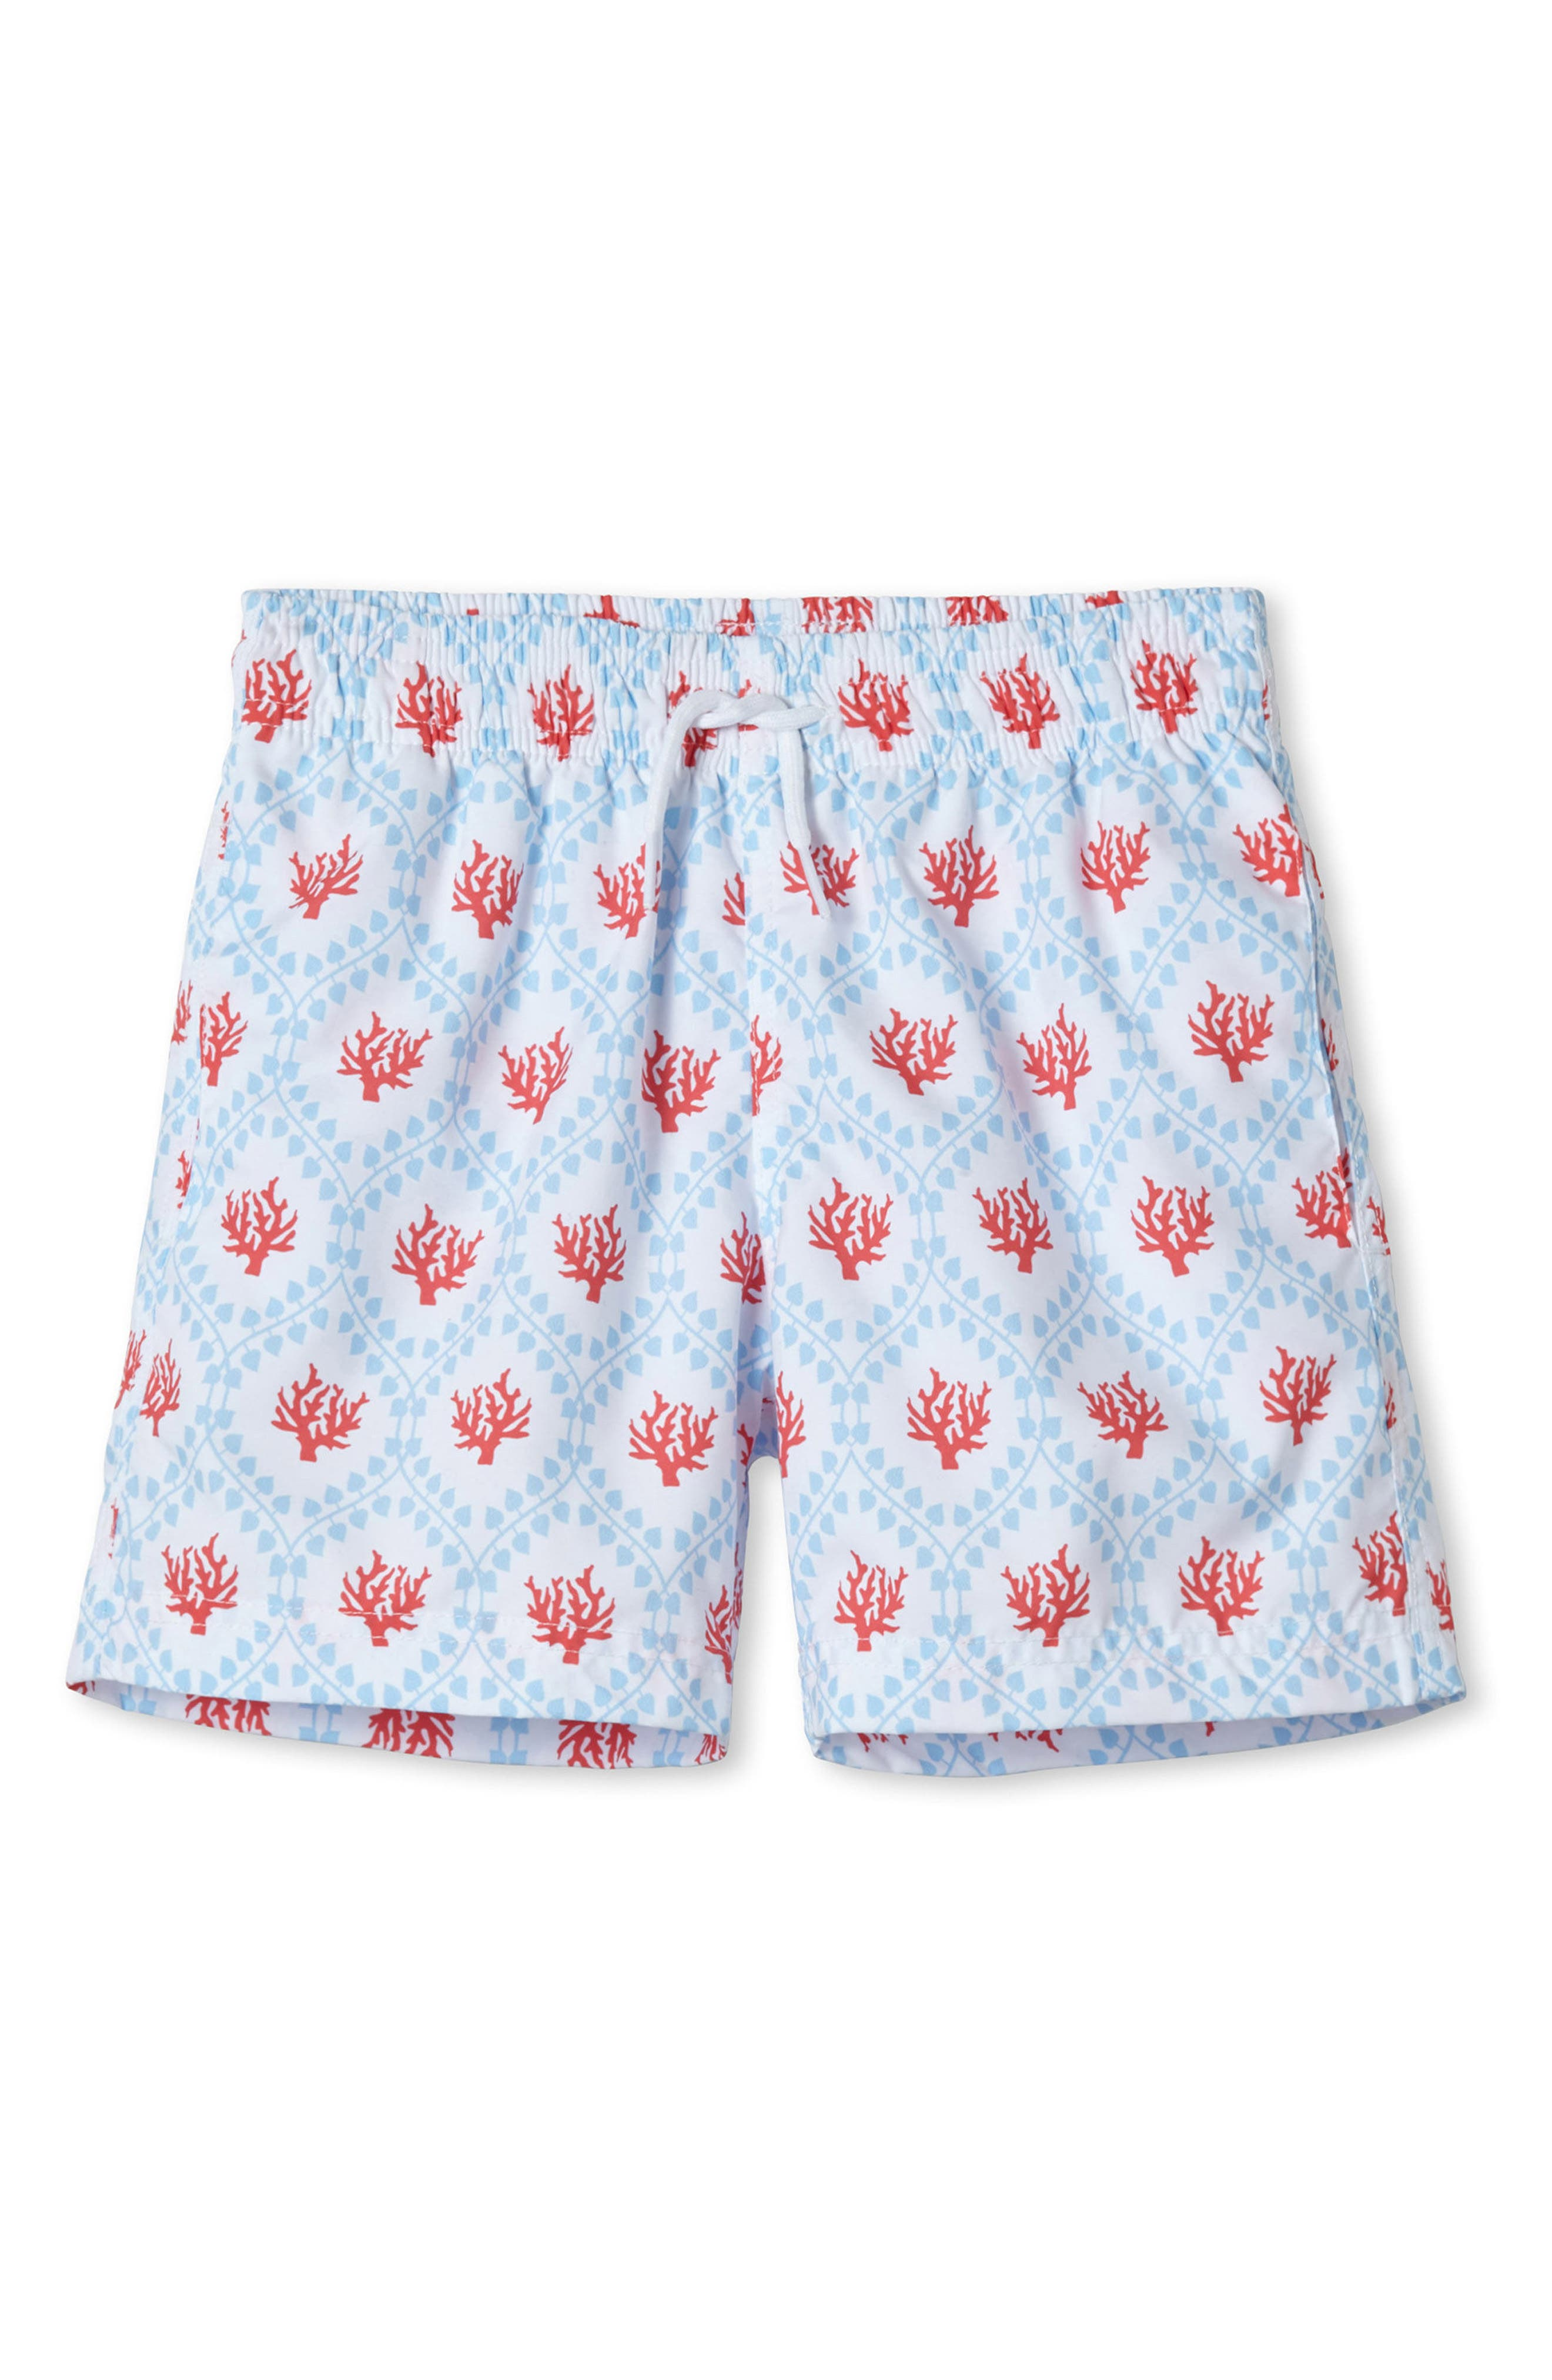 Alternate Image 1 Selected - Stella Cove Red Coral Swim Trunks (Toddler Boys & Little Boys)